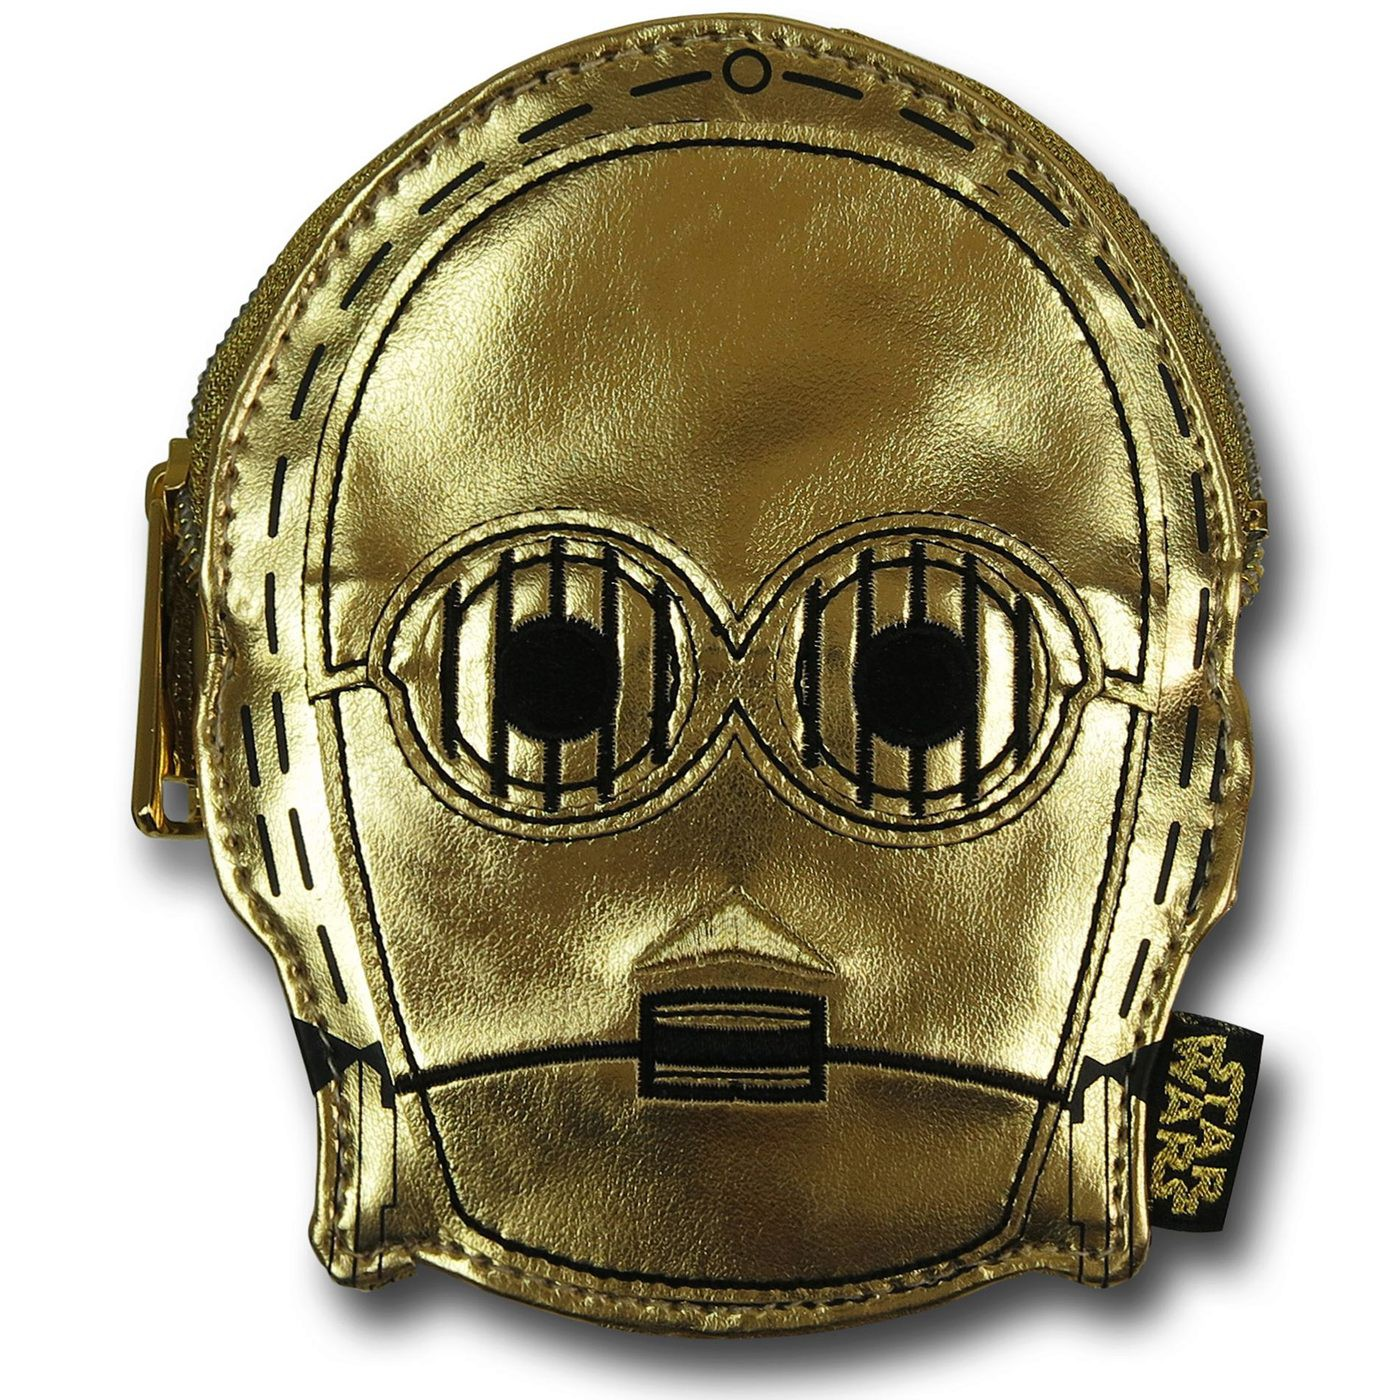 Star Wars C3PO Faux Leather Coin Purse